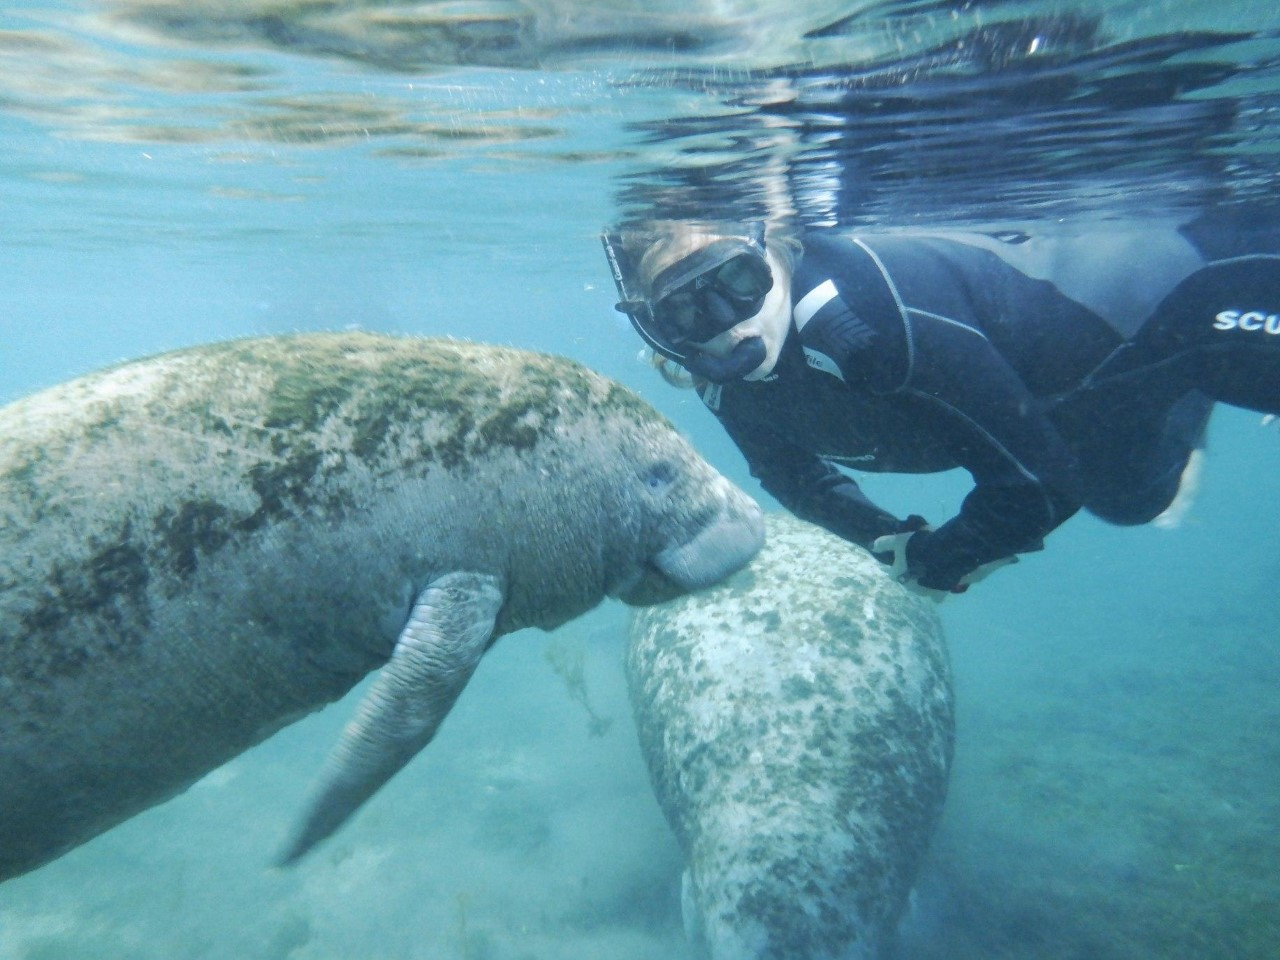 person in wetsuit with snorkel looks at camera as 2 manatees swim near her